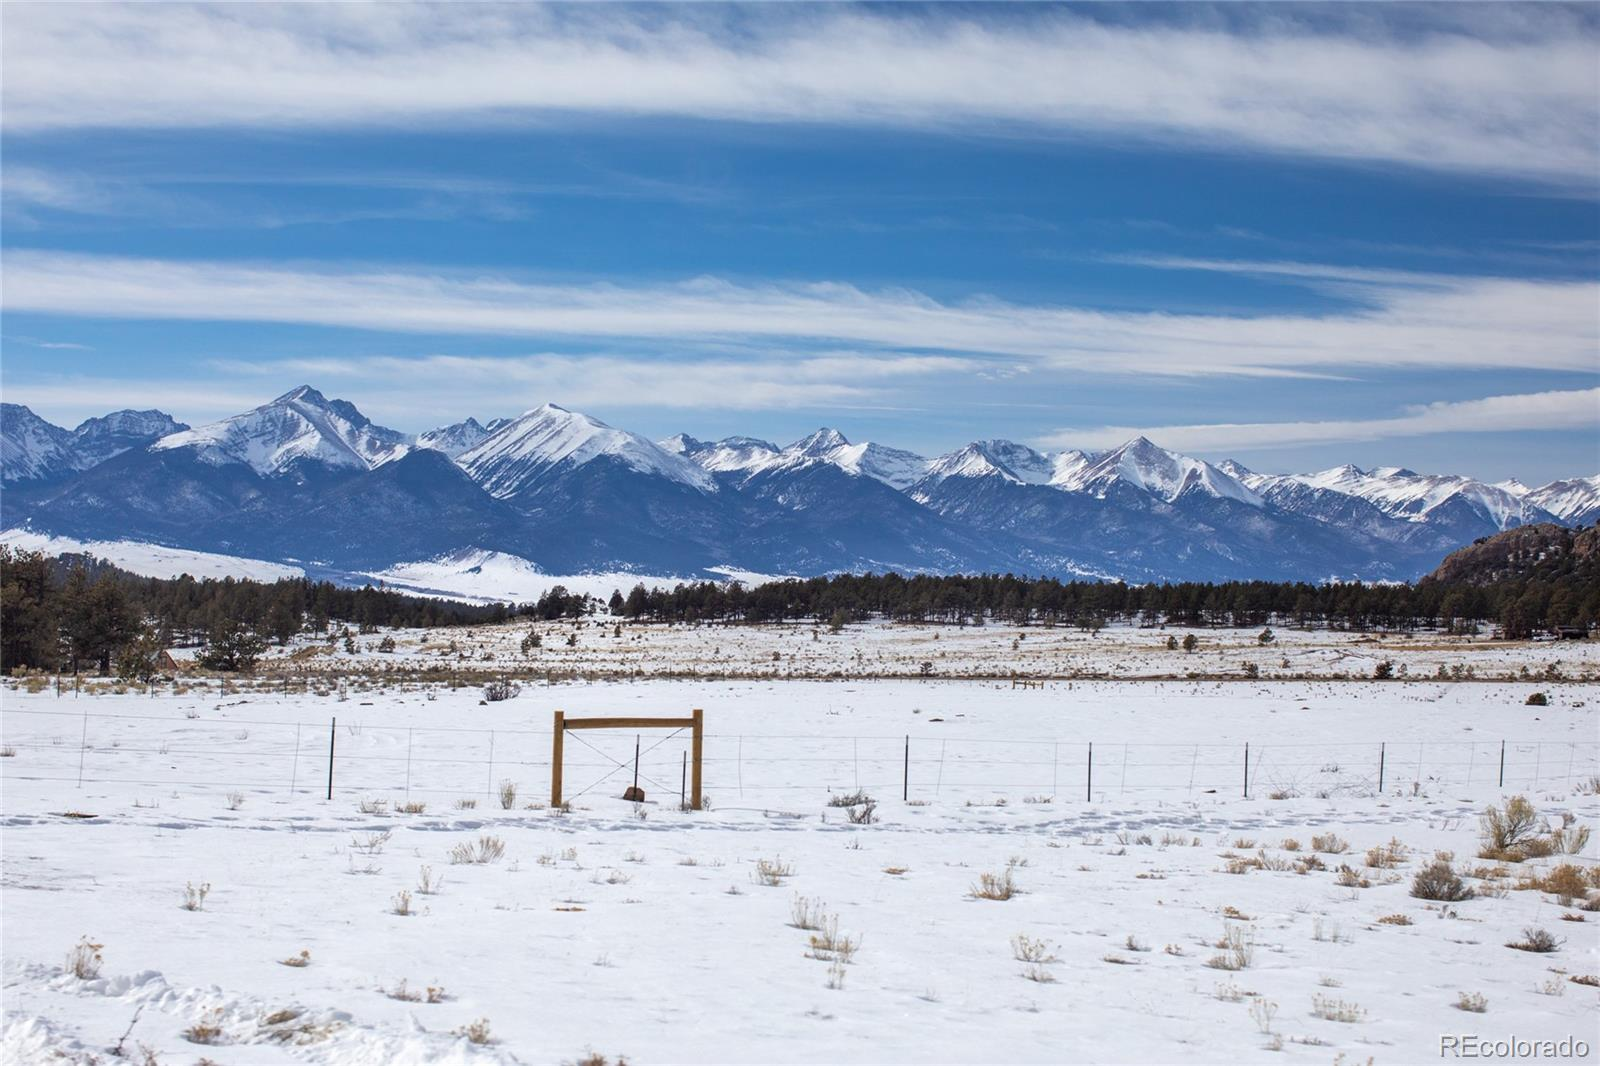 Your opportunity to acquire a premium property in Westcliffe, Colorado that has it ALL and NO HOA! COMMANDING MOUNTAIN VIEWS of the SANGRE DE CRISTO MOUNTAIN RANGE throughout the property. Wet Mountain Views. LIVE WATER from a Spring Fed Rocky Mountain Stream, High producing well, Forest, Meadow Lands and grassy pasture.  Fencing is ready for your animals! Driveway is in, buried power, septic, NEW 2400'+/- Fully heated HORSE BARN, with plumbed wash area for bathing horses, Dutch stall doors with direct convenient access to large paddock. Hay loft. Automatic heated waterers. Full bathroom and kitchen. Aspen and pine tung and groove. Multiple power garage doors with pull through RV parking area (could be converted to more stalls). Two RV hookup areas, both inside and outside barn! The well has added hand pump to keep water available during a power outage. Grow year round in your NEW 18'x36' GREEN HOUSE, fully secured to concrete foundation with heavy wind and snow load ratings. 8mm panels hold heat in for year round gardening. Automatic vents and fans for cooling and thermostat controlled propane heater. Outlets and lights. Two additional fans for air circulation make for a healthy growing environment. Complete with recently purchased  Sun Shade for staying cool in summer months. Ten waist high planter beds for easy access. Plenty of room for trees. LED lighting for night gardening and water connection inside for easy irrigating. Don't miss out on this chance to build on some of the very best Westcliffe, Colorado has to offer right in the incredible WET MOUNTAIN VALLEY area. Pristine and scenic location is also convenient to miles of national forest. (This property is currently being offered BOTH as 100 +/-  acre track OR SPLIT 65 +/-  acre plus barn, green house, roads, septic, well and power.) 3D VIRTUAL TOUR is attached to this property! Also see property website for more photos and drone video footage. Appointment required. Information must be verified by buyer.